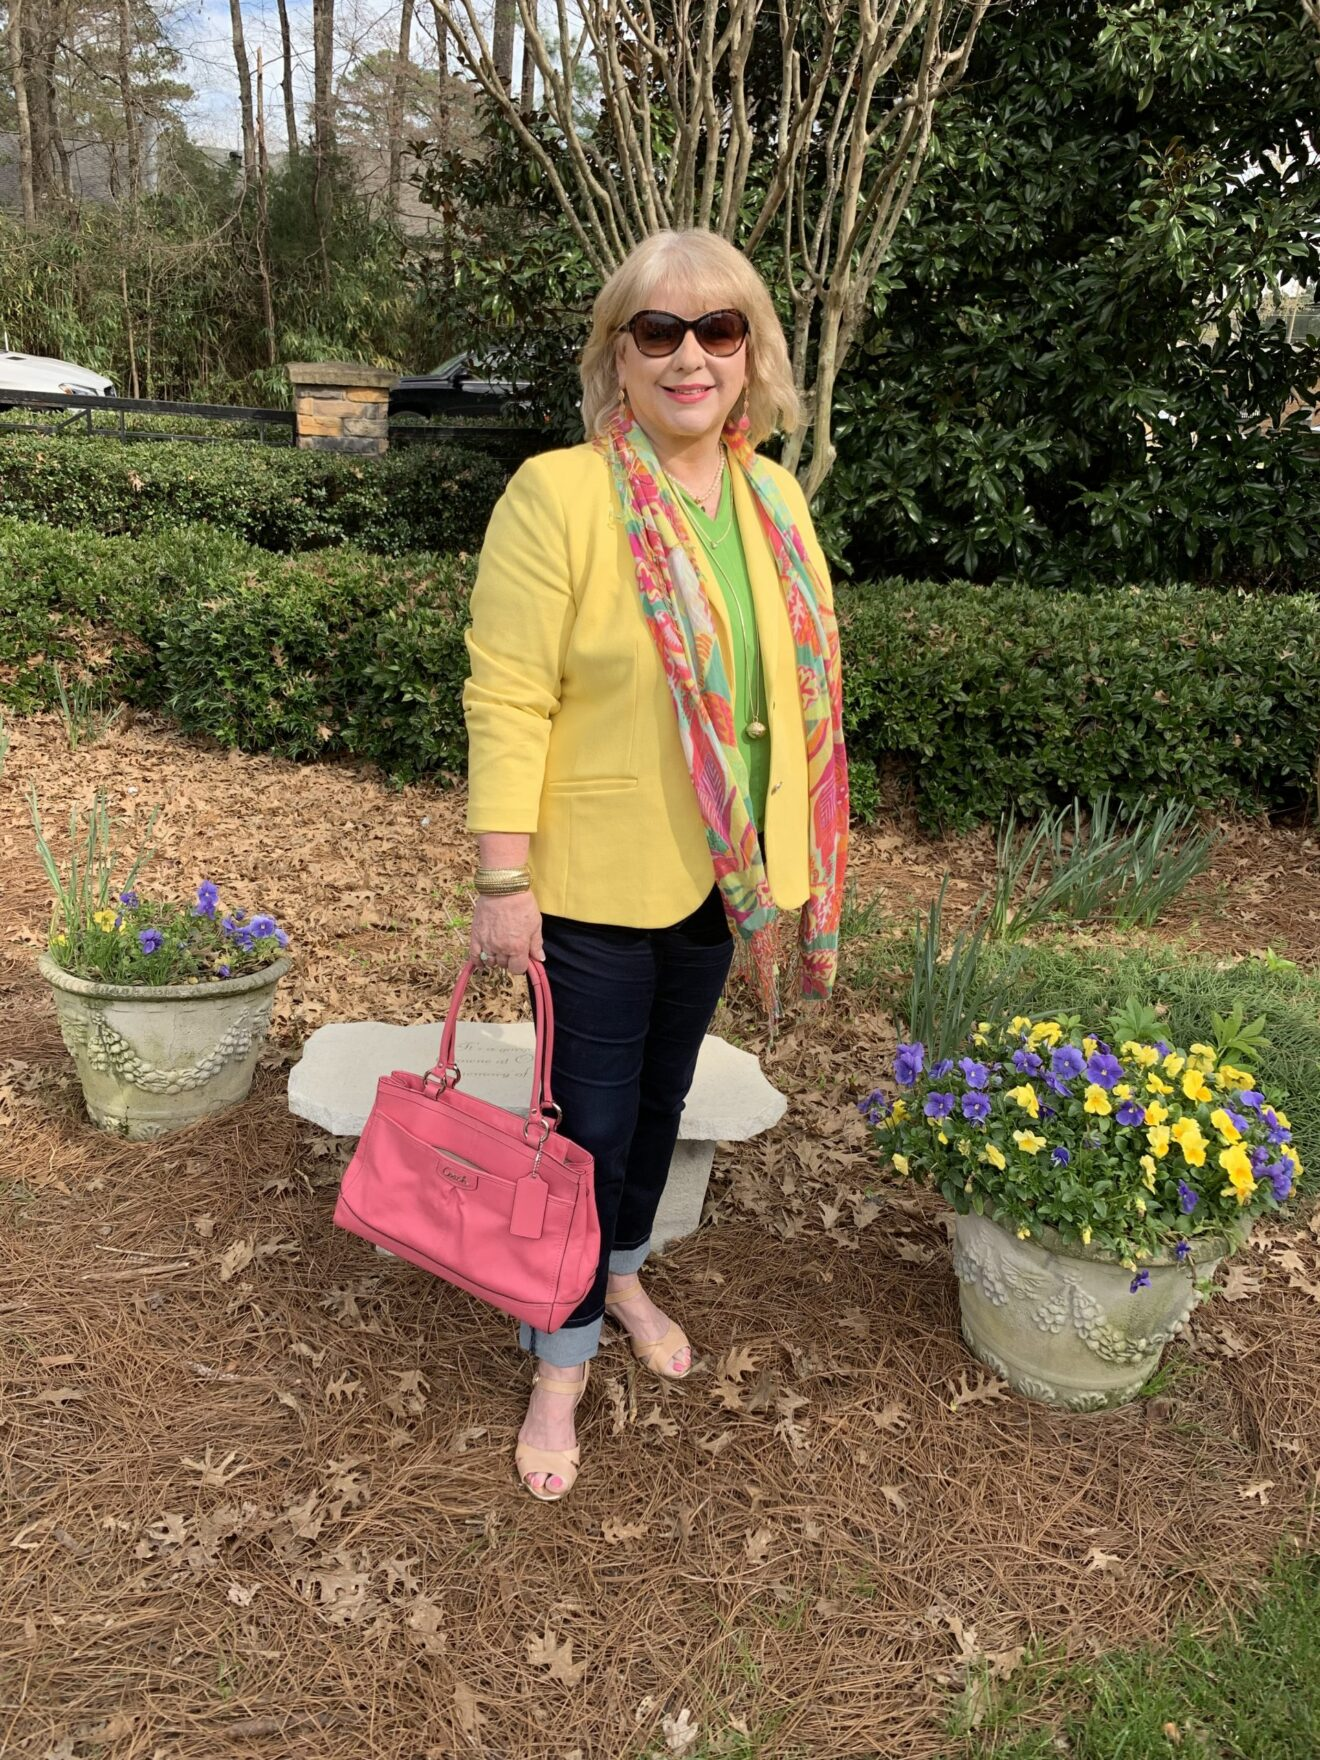 Style Story Interview Classy Colorful Confidence @StyleShennanigans Shannon Holmes Fashion Over 50 60 Confident Bright Yellow Lime Green Coral Pink Spring Outfit Story Behind The Cloth scaled